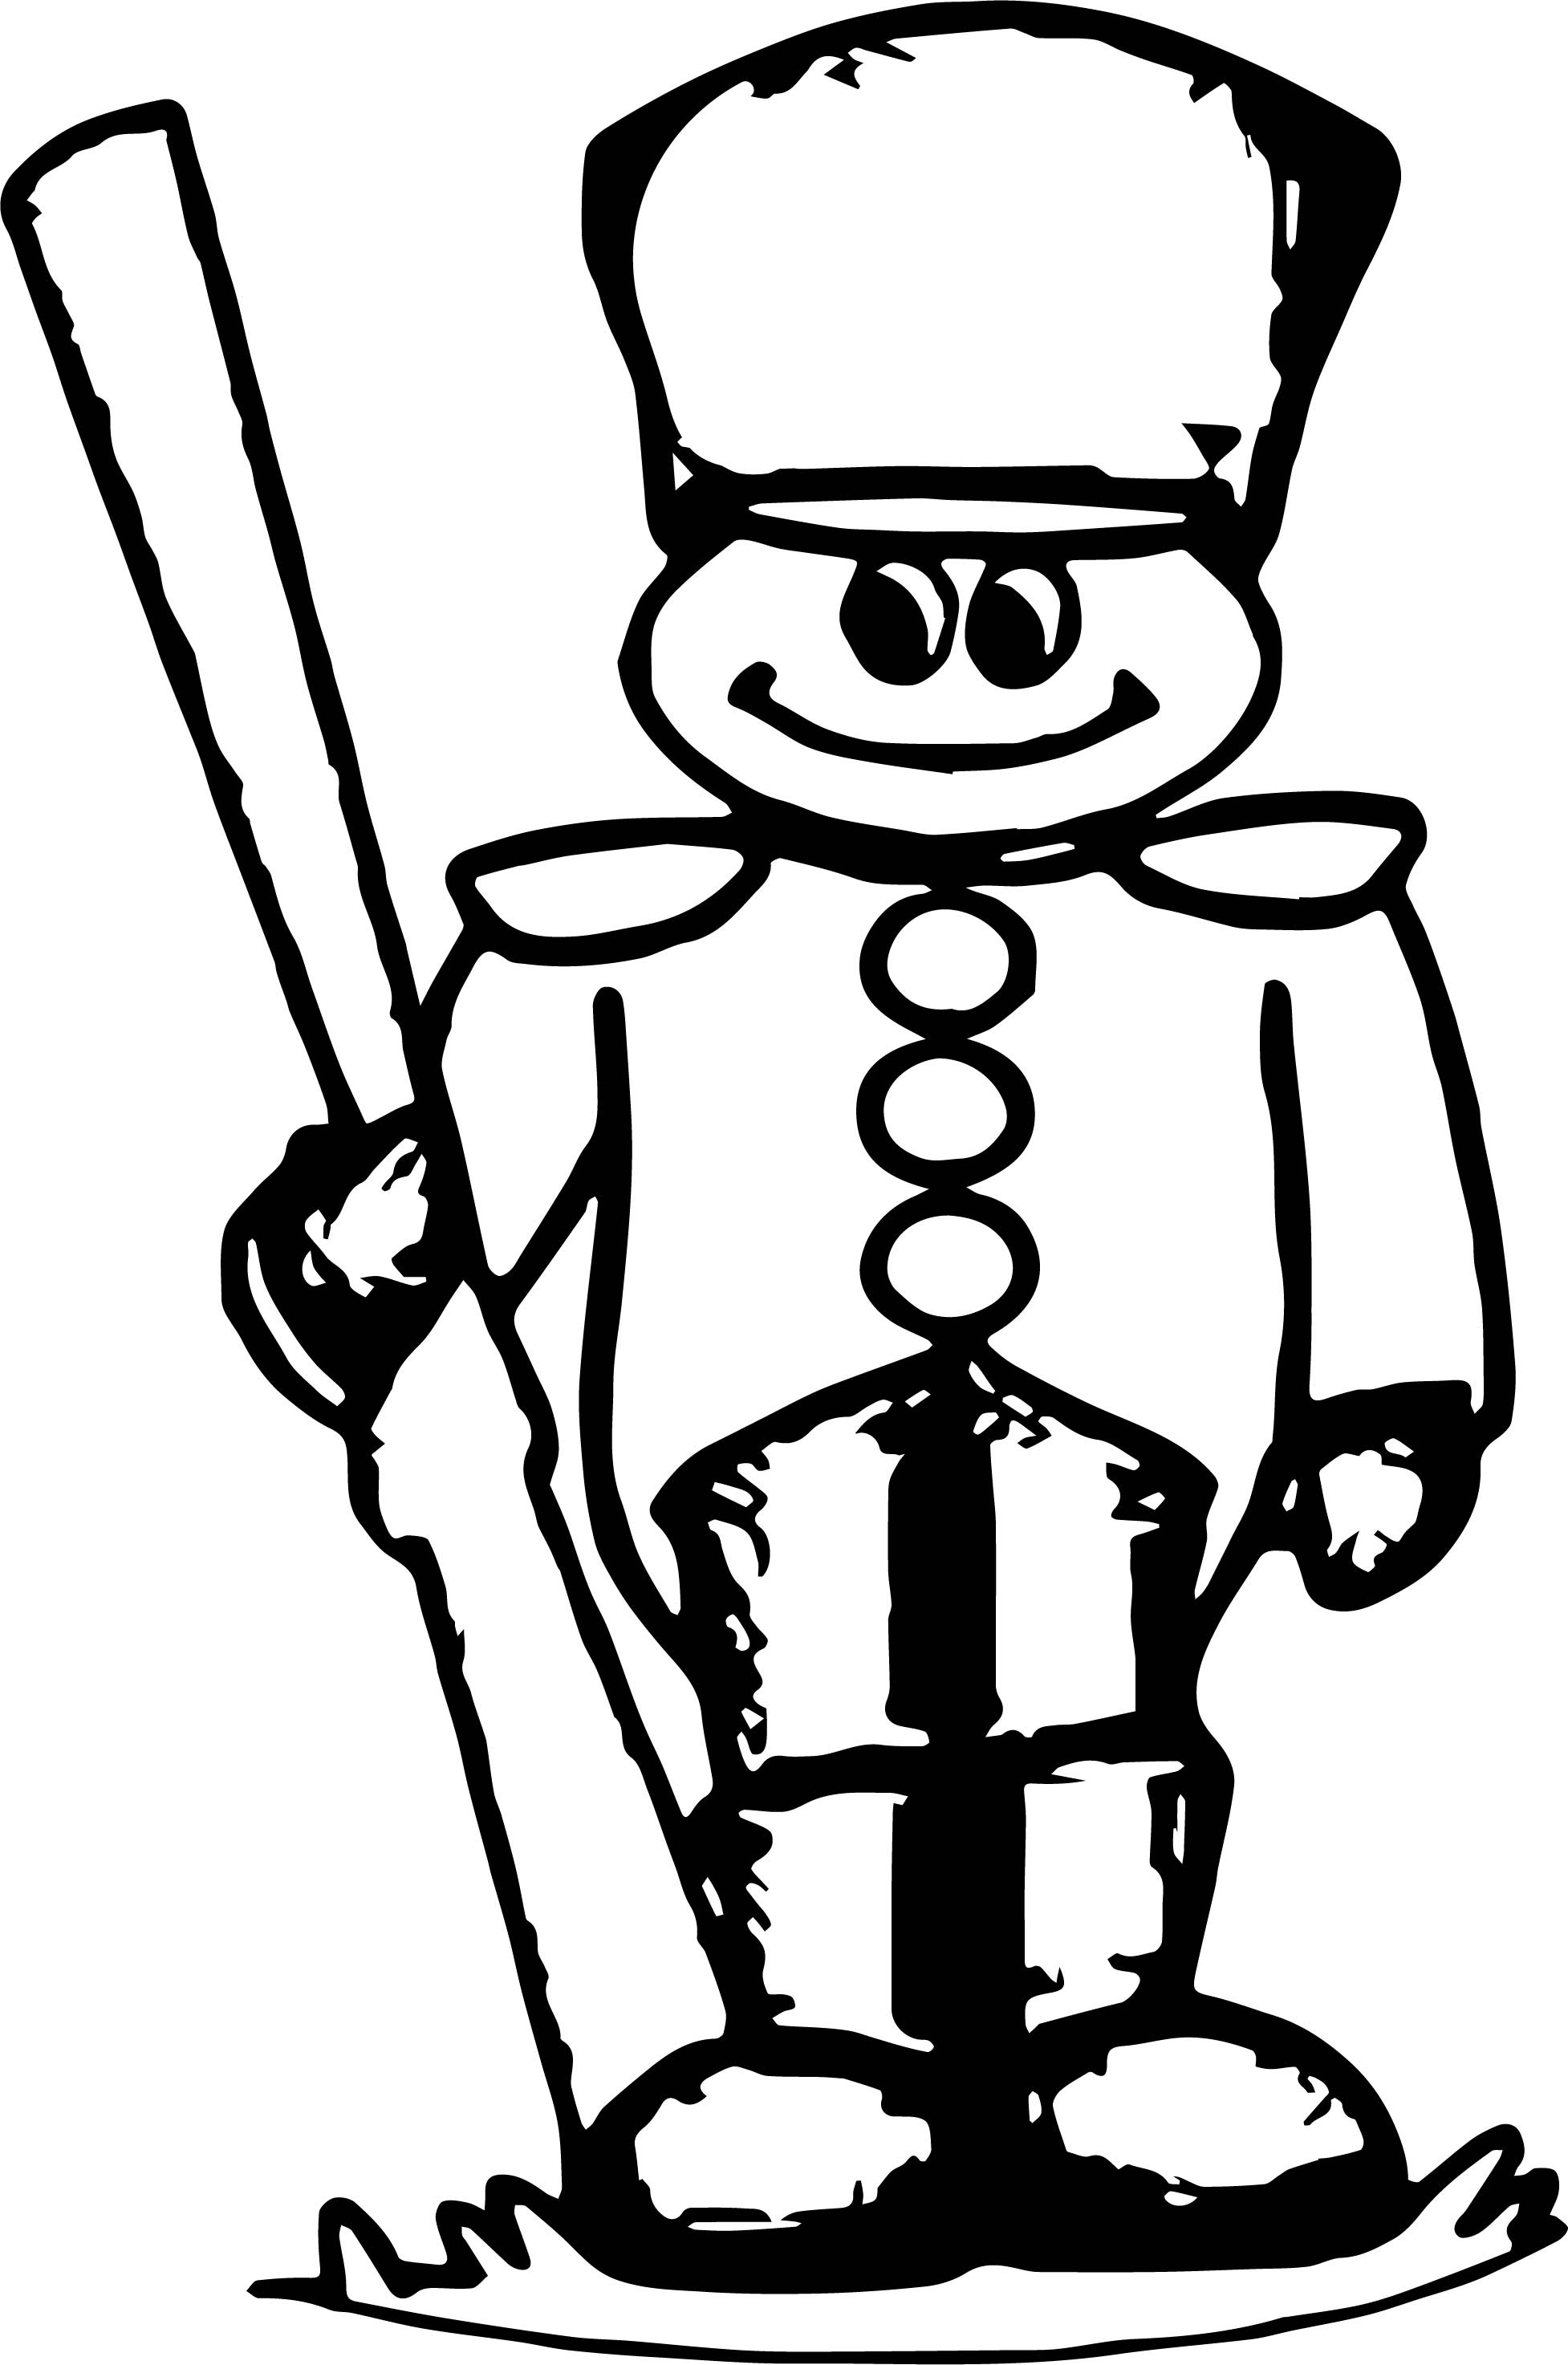 Small Toy Soldier Coloring Page | Wecoloringpage.com